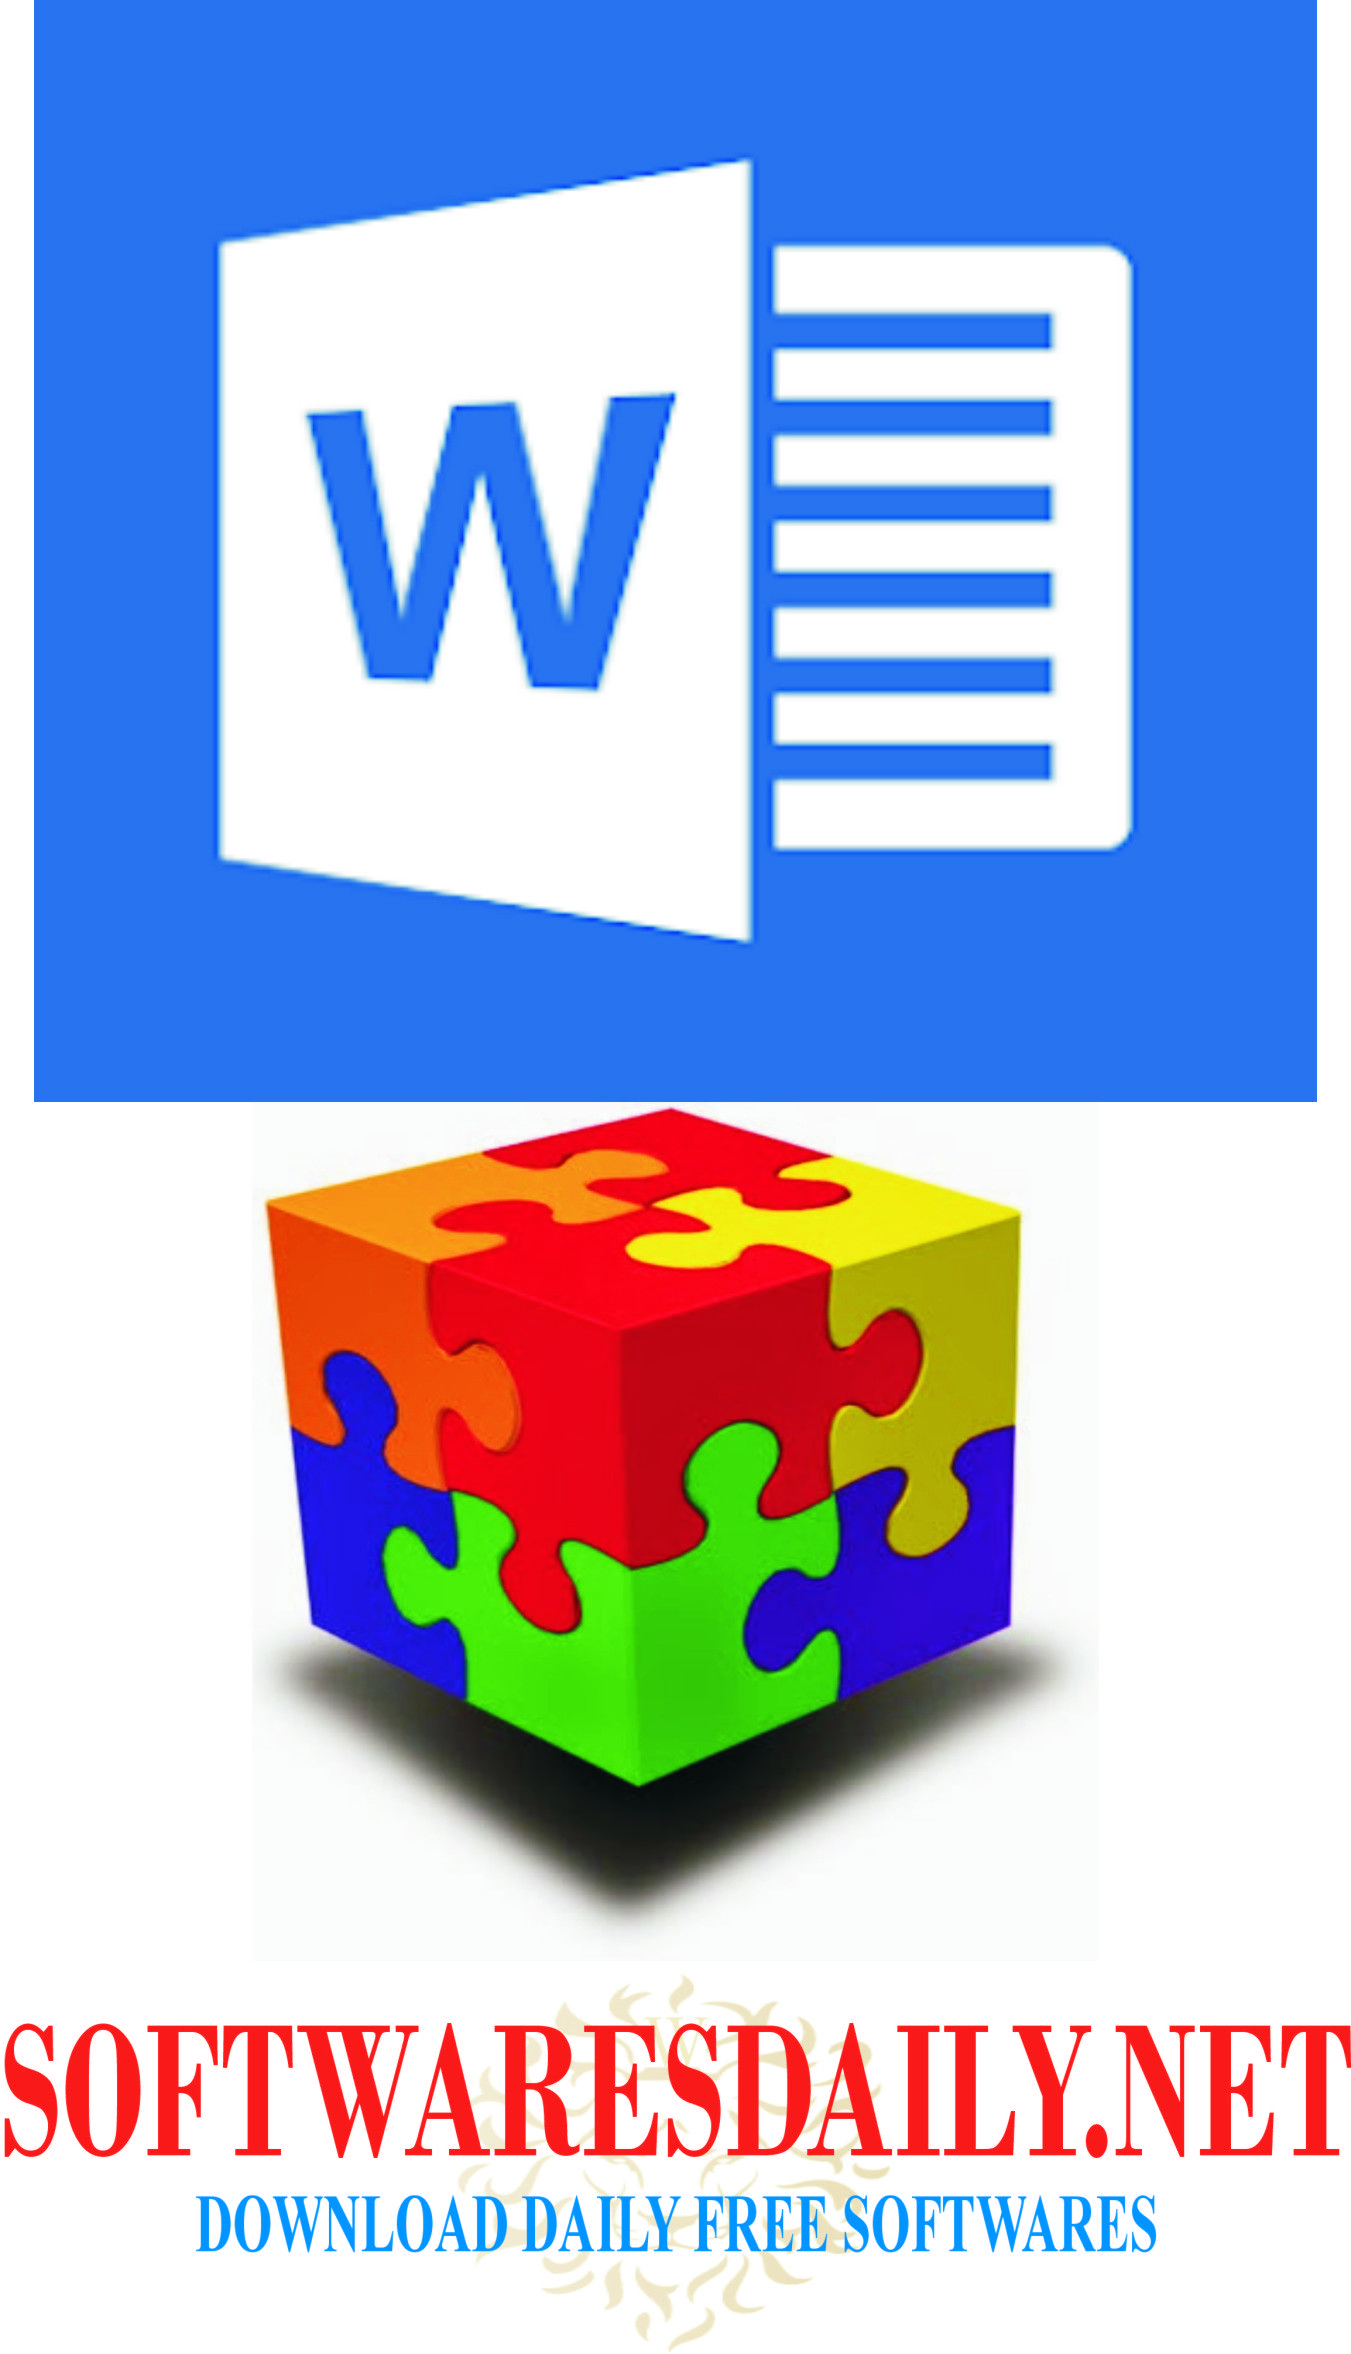 Microsoft Word 16 0 8625 2046 APK Full Android Free Download